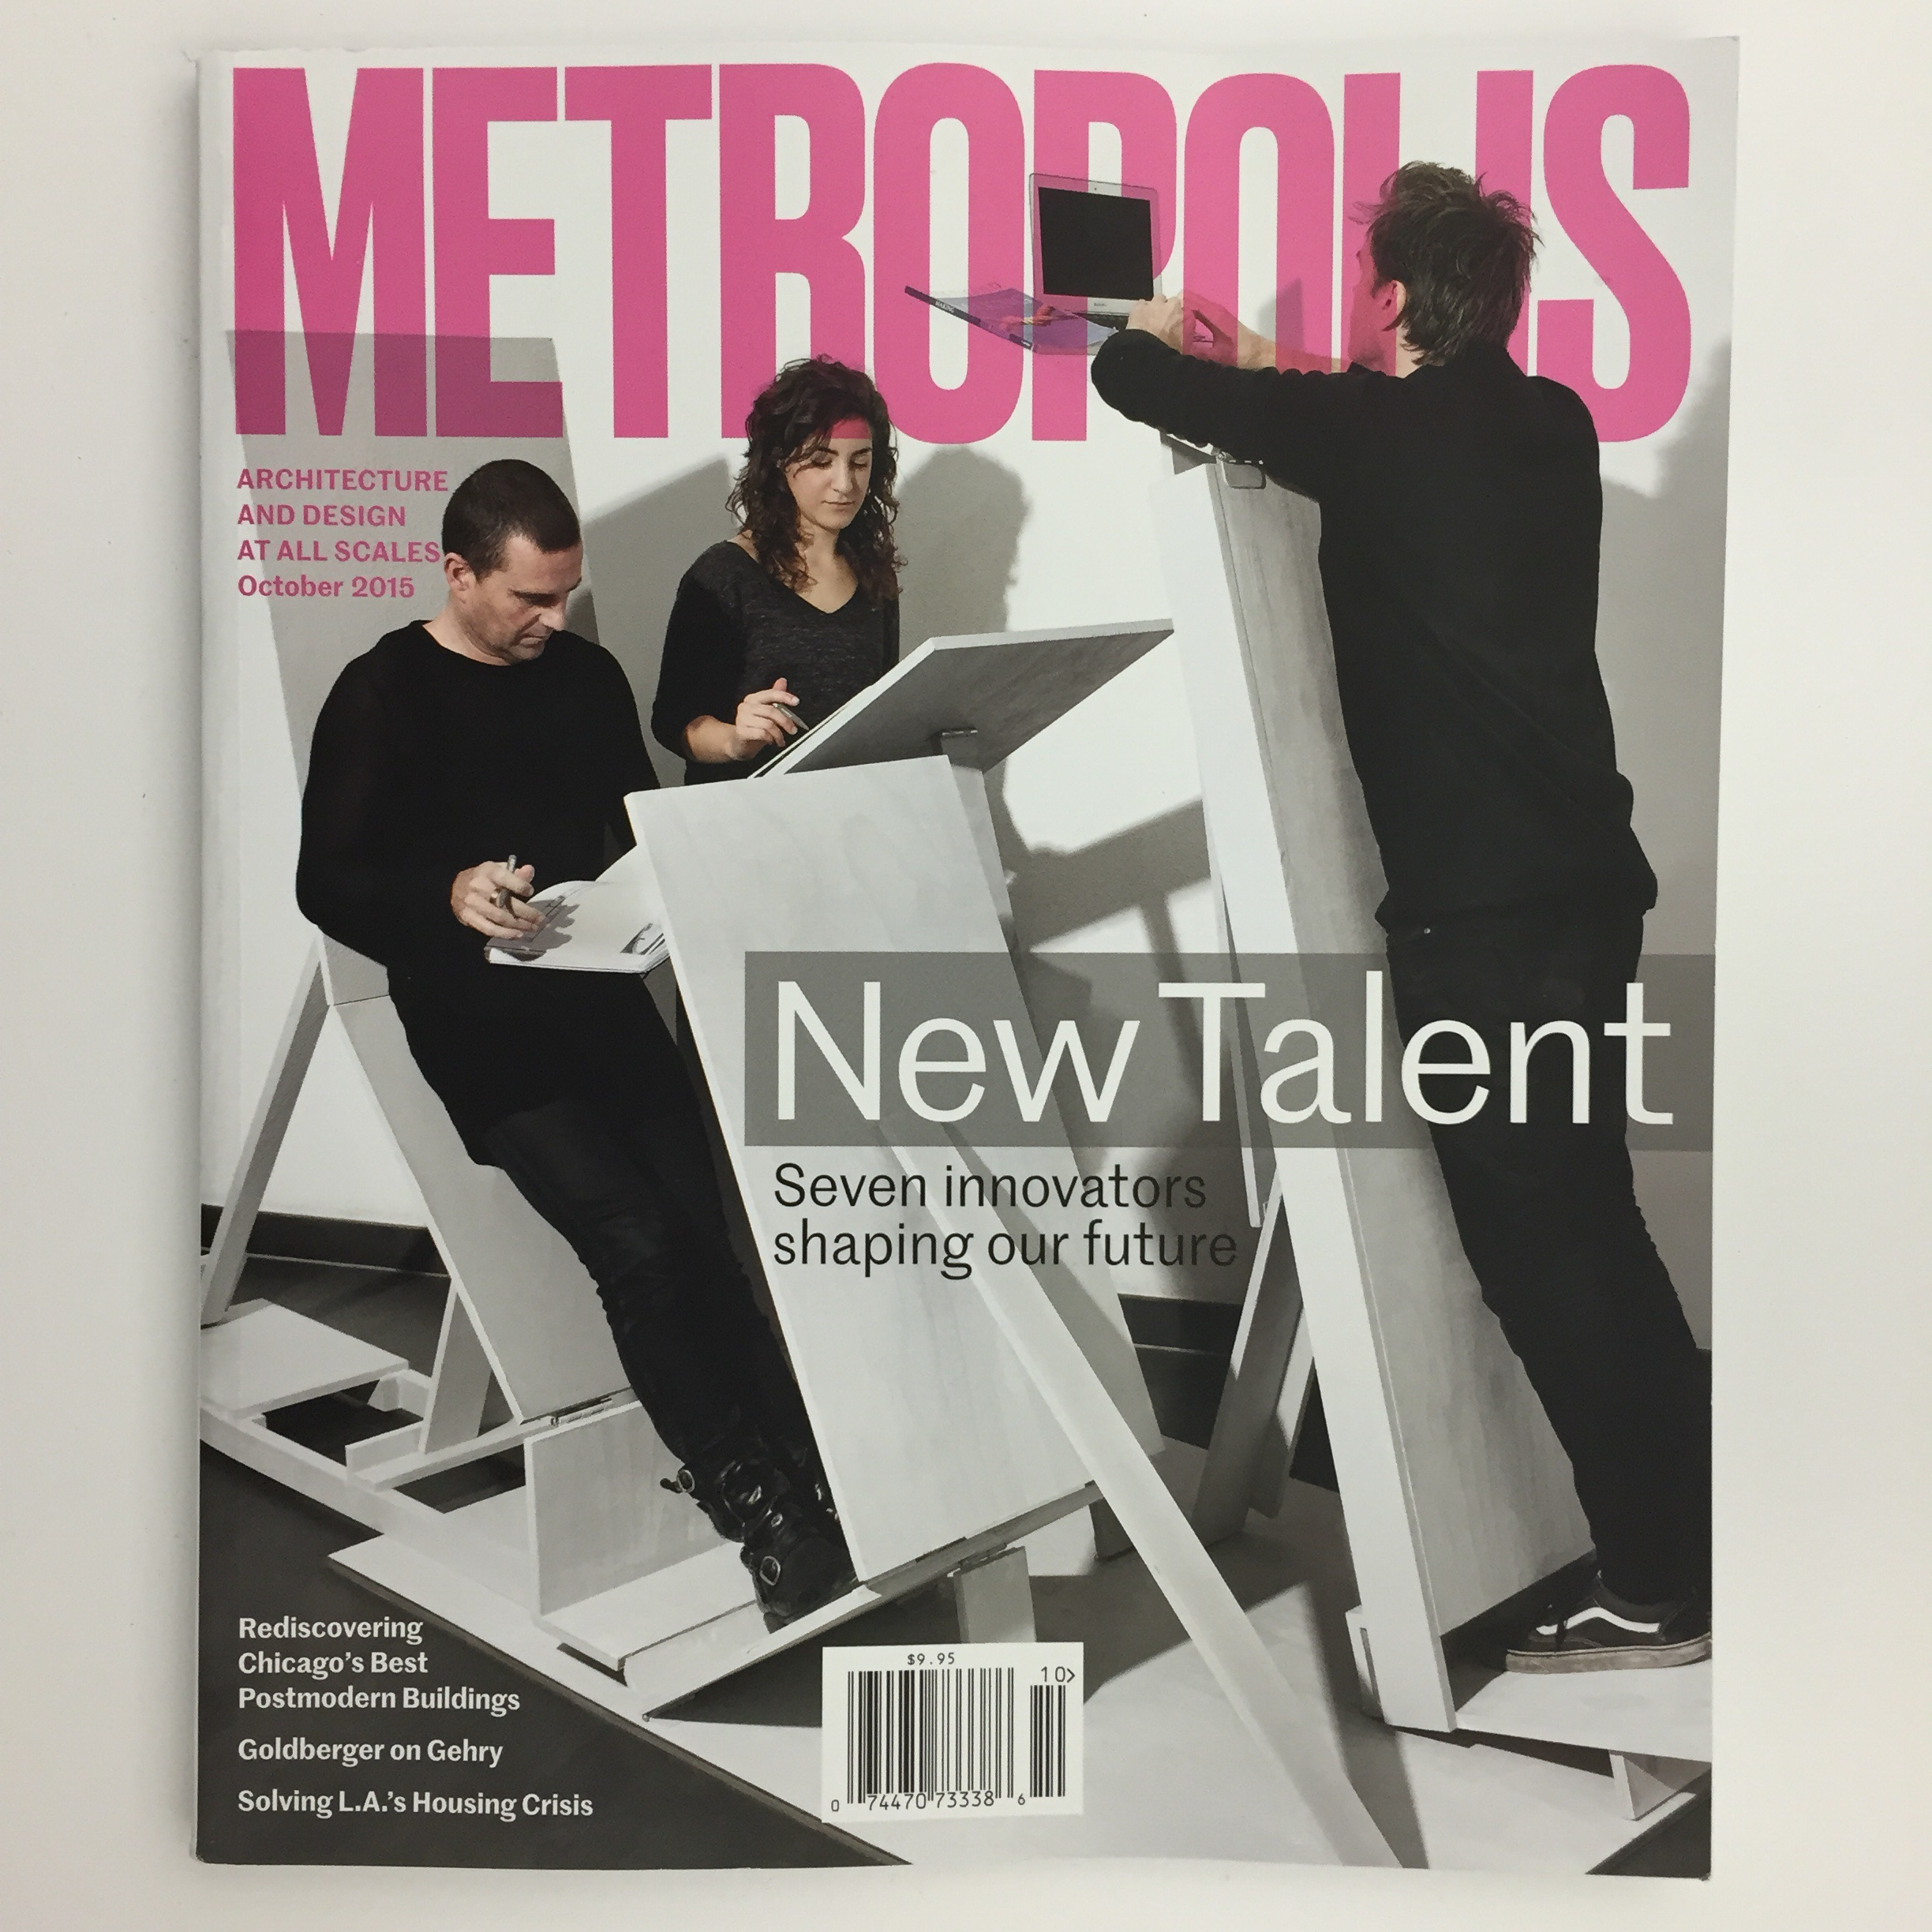 RAAAF elected New Talent by Metropolis NYC for our architecture of